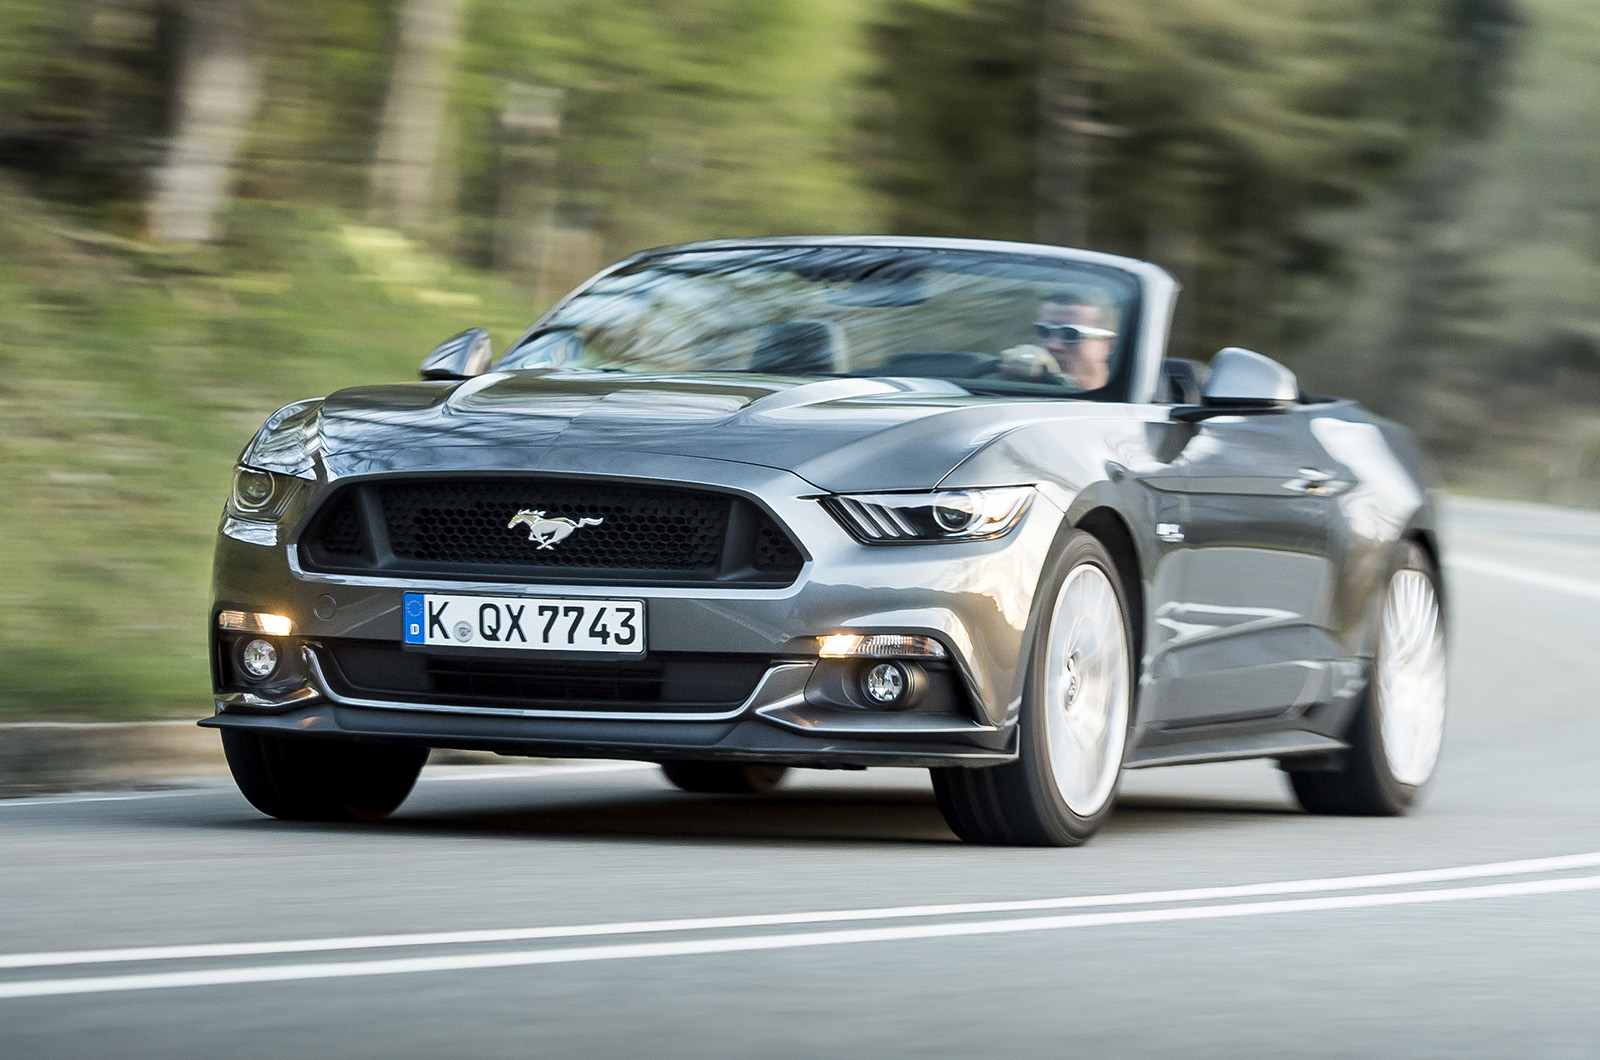 2015 Ford Mustang Convertible 2 3 Ecoboost Review Review Autocar